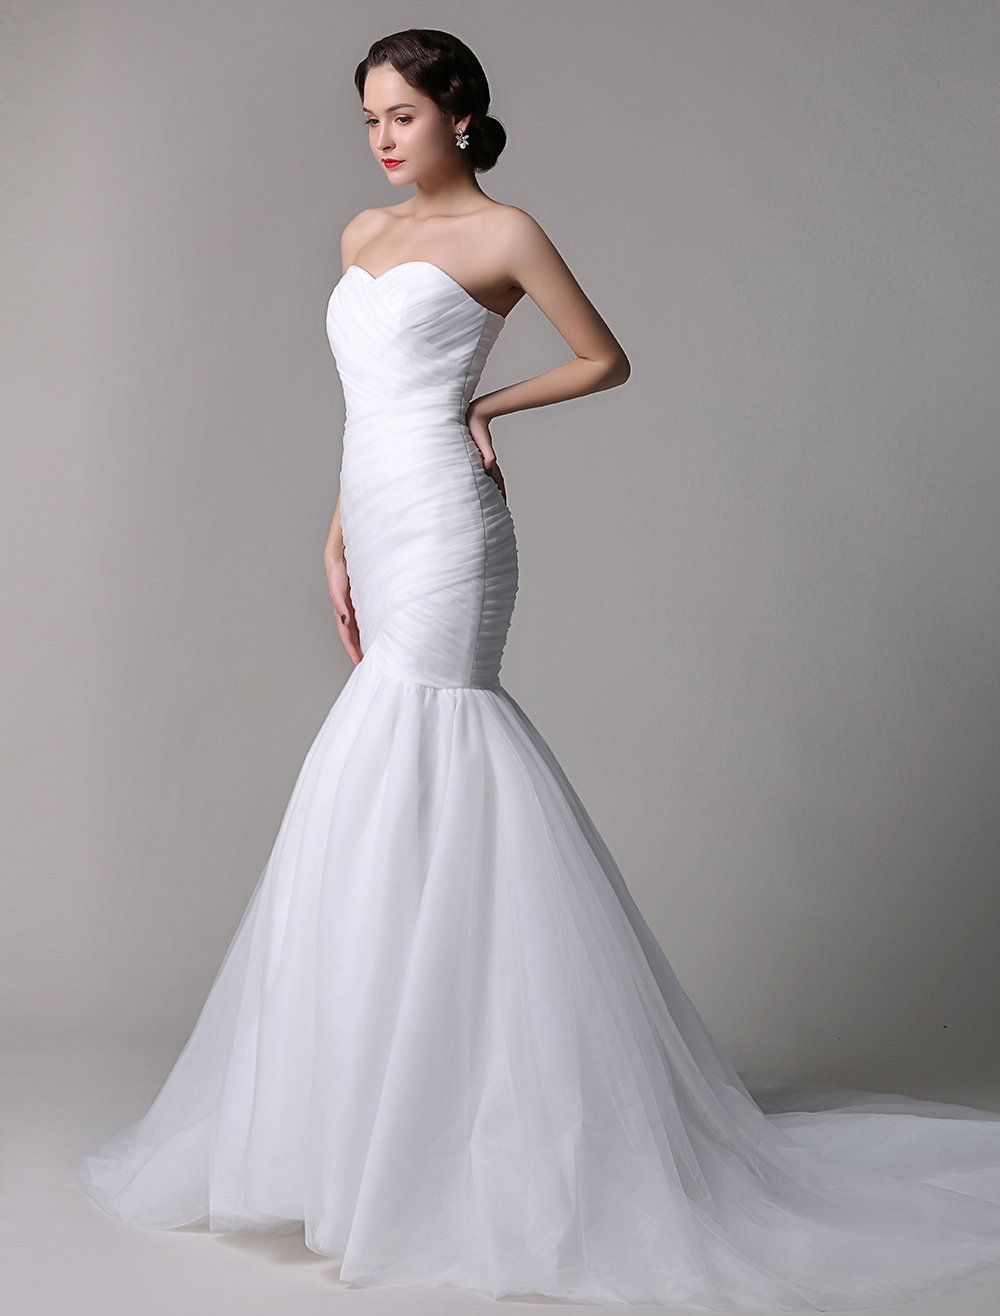 Fabulous Simple Tulle Strapless Sweatheart Mermaid Trumpet Wedding Dress With Court Train